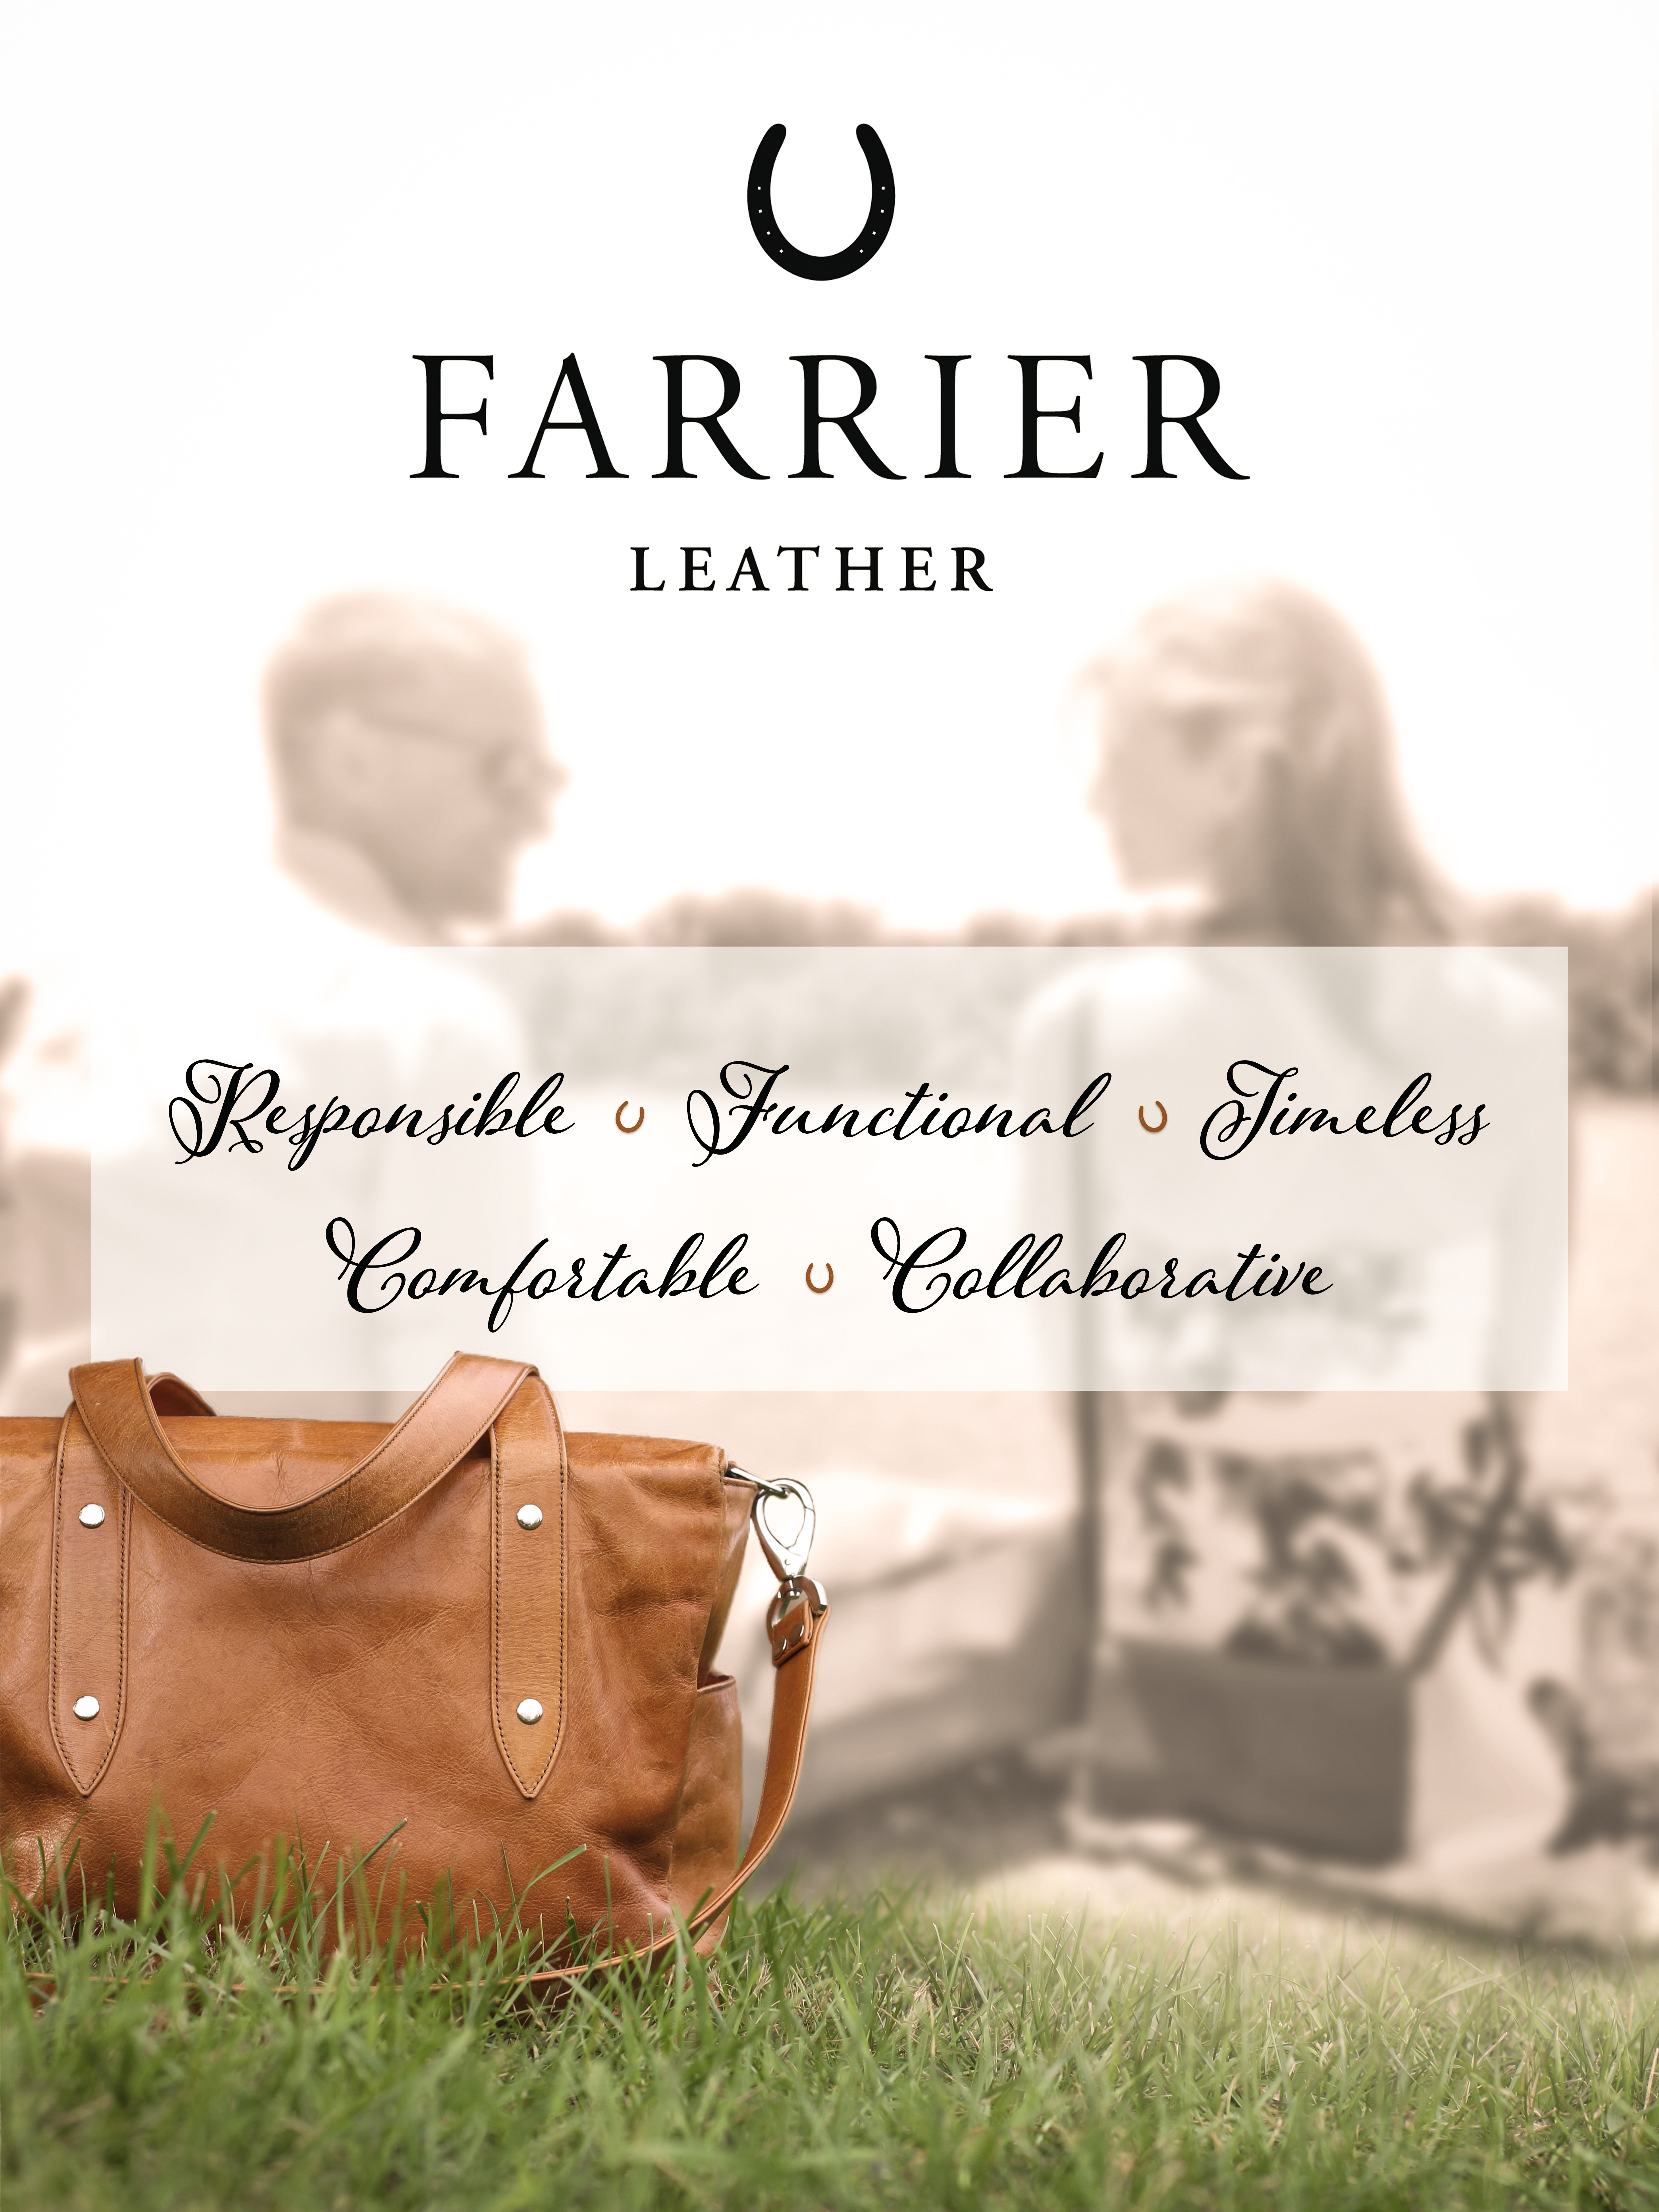 Farrier Leather Values Poster